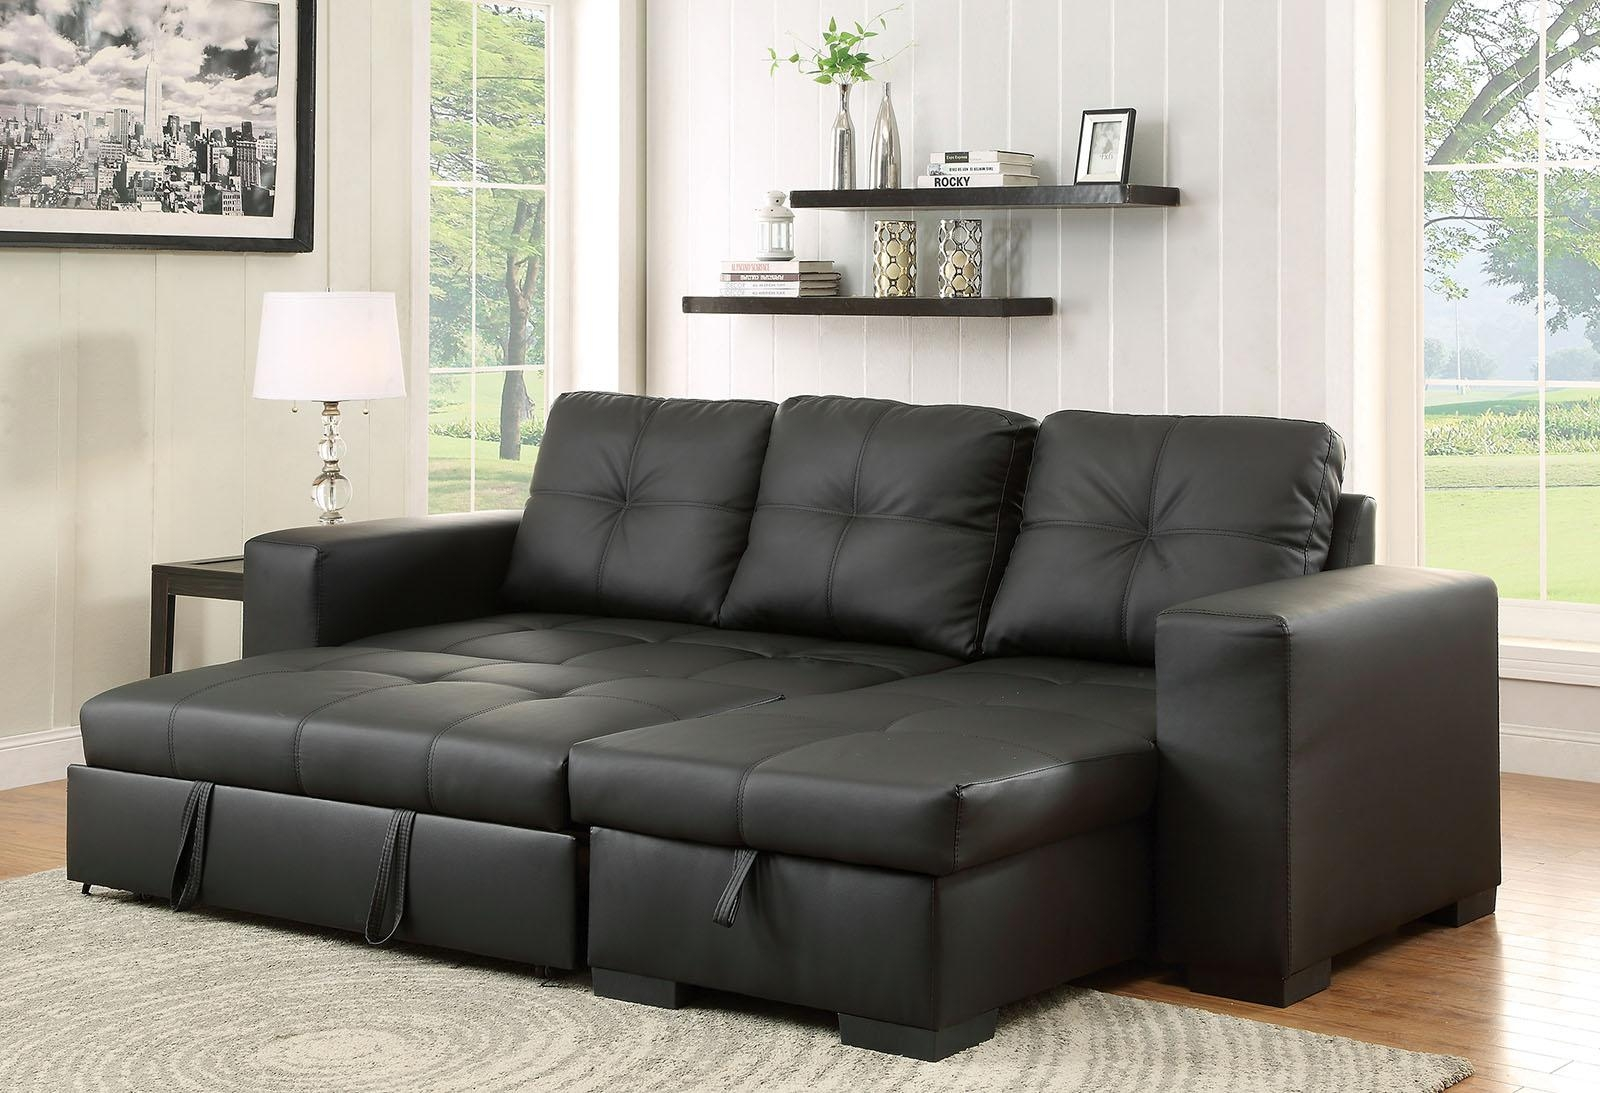 Denton Contemporary Style Black Leatherette Sofa Sectional W/ Pull With Pull Out Sectional (Image 8 of 20)